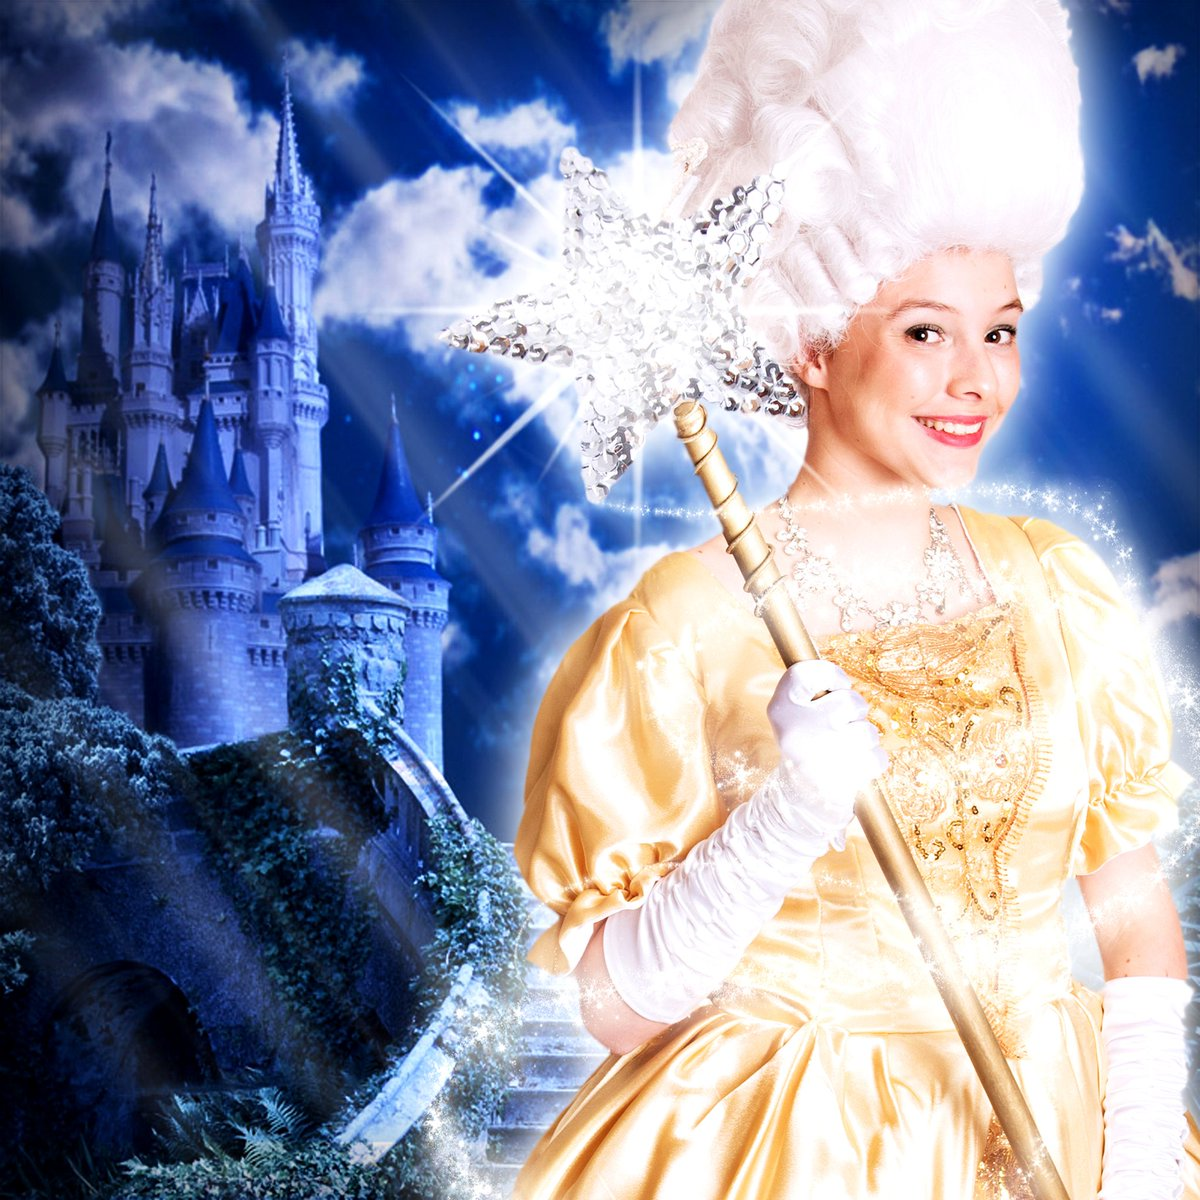 Are you looking to bring a sprinkle of magic this #christmas? @harlequincostum have hundreds of pantomime costumes available to hire for #school #productions. #WorcestershireHour https://t.co/Of7bQc3Lxt